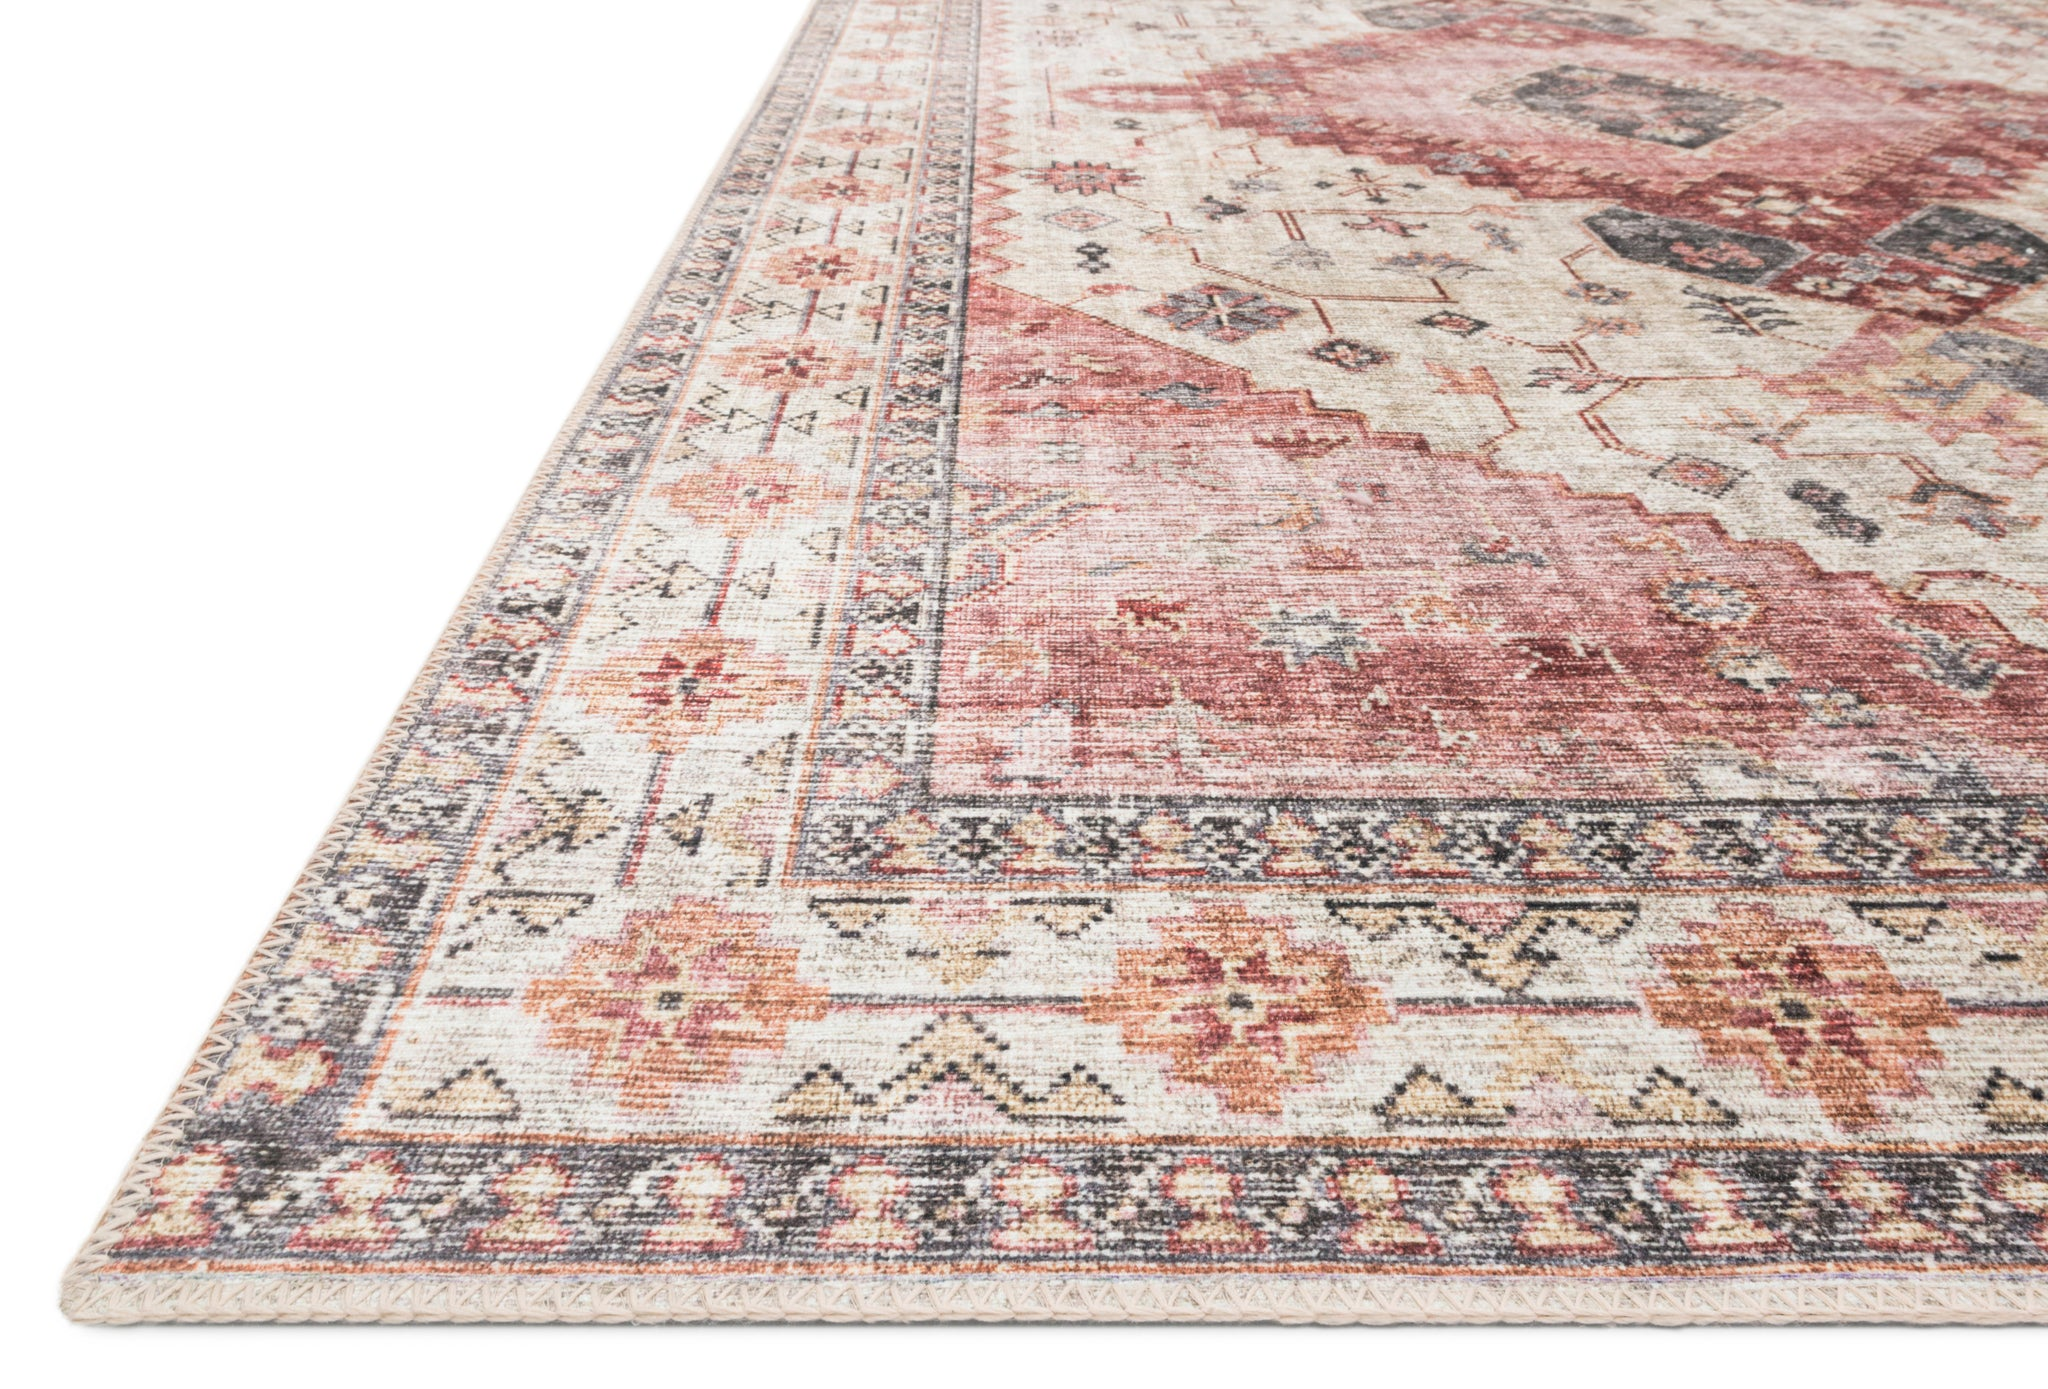 Pink and Gray Southwestern Boho Bohemian Persian Style Rug